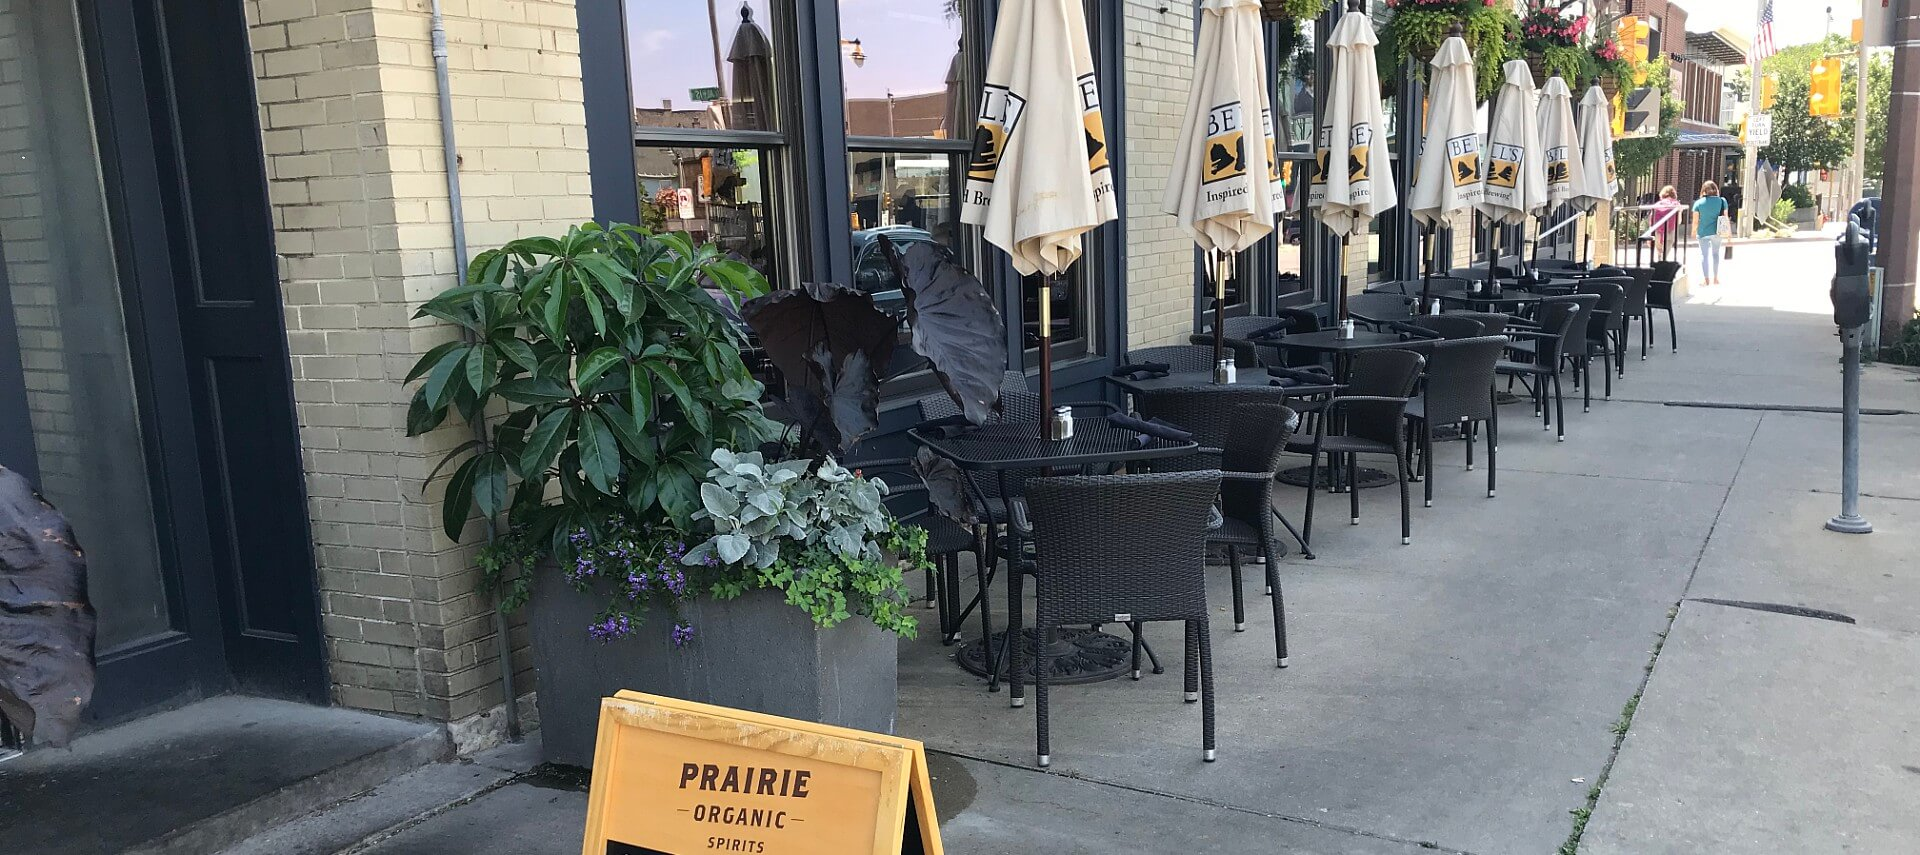 Black iron bistro tables and chairs set up outside a restaurant on a city street.